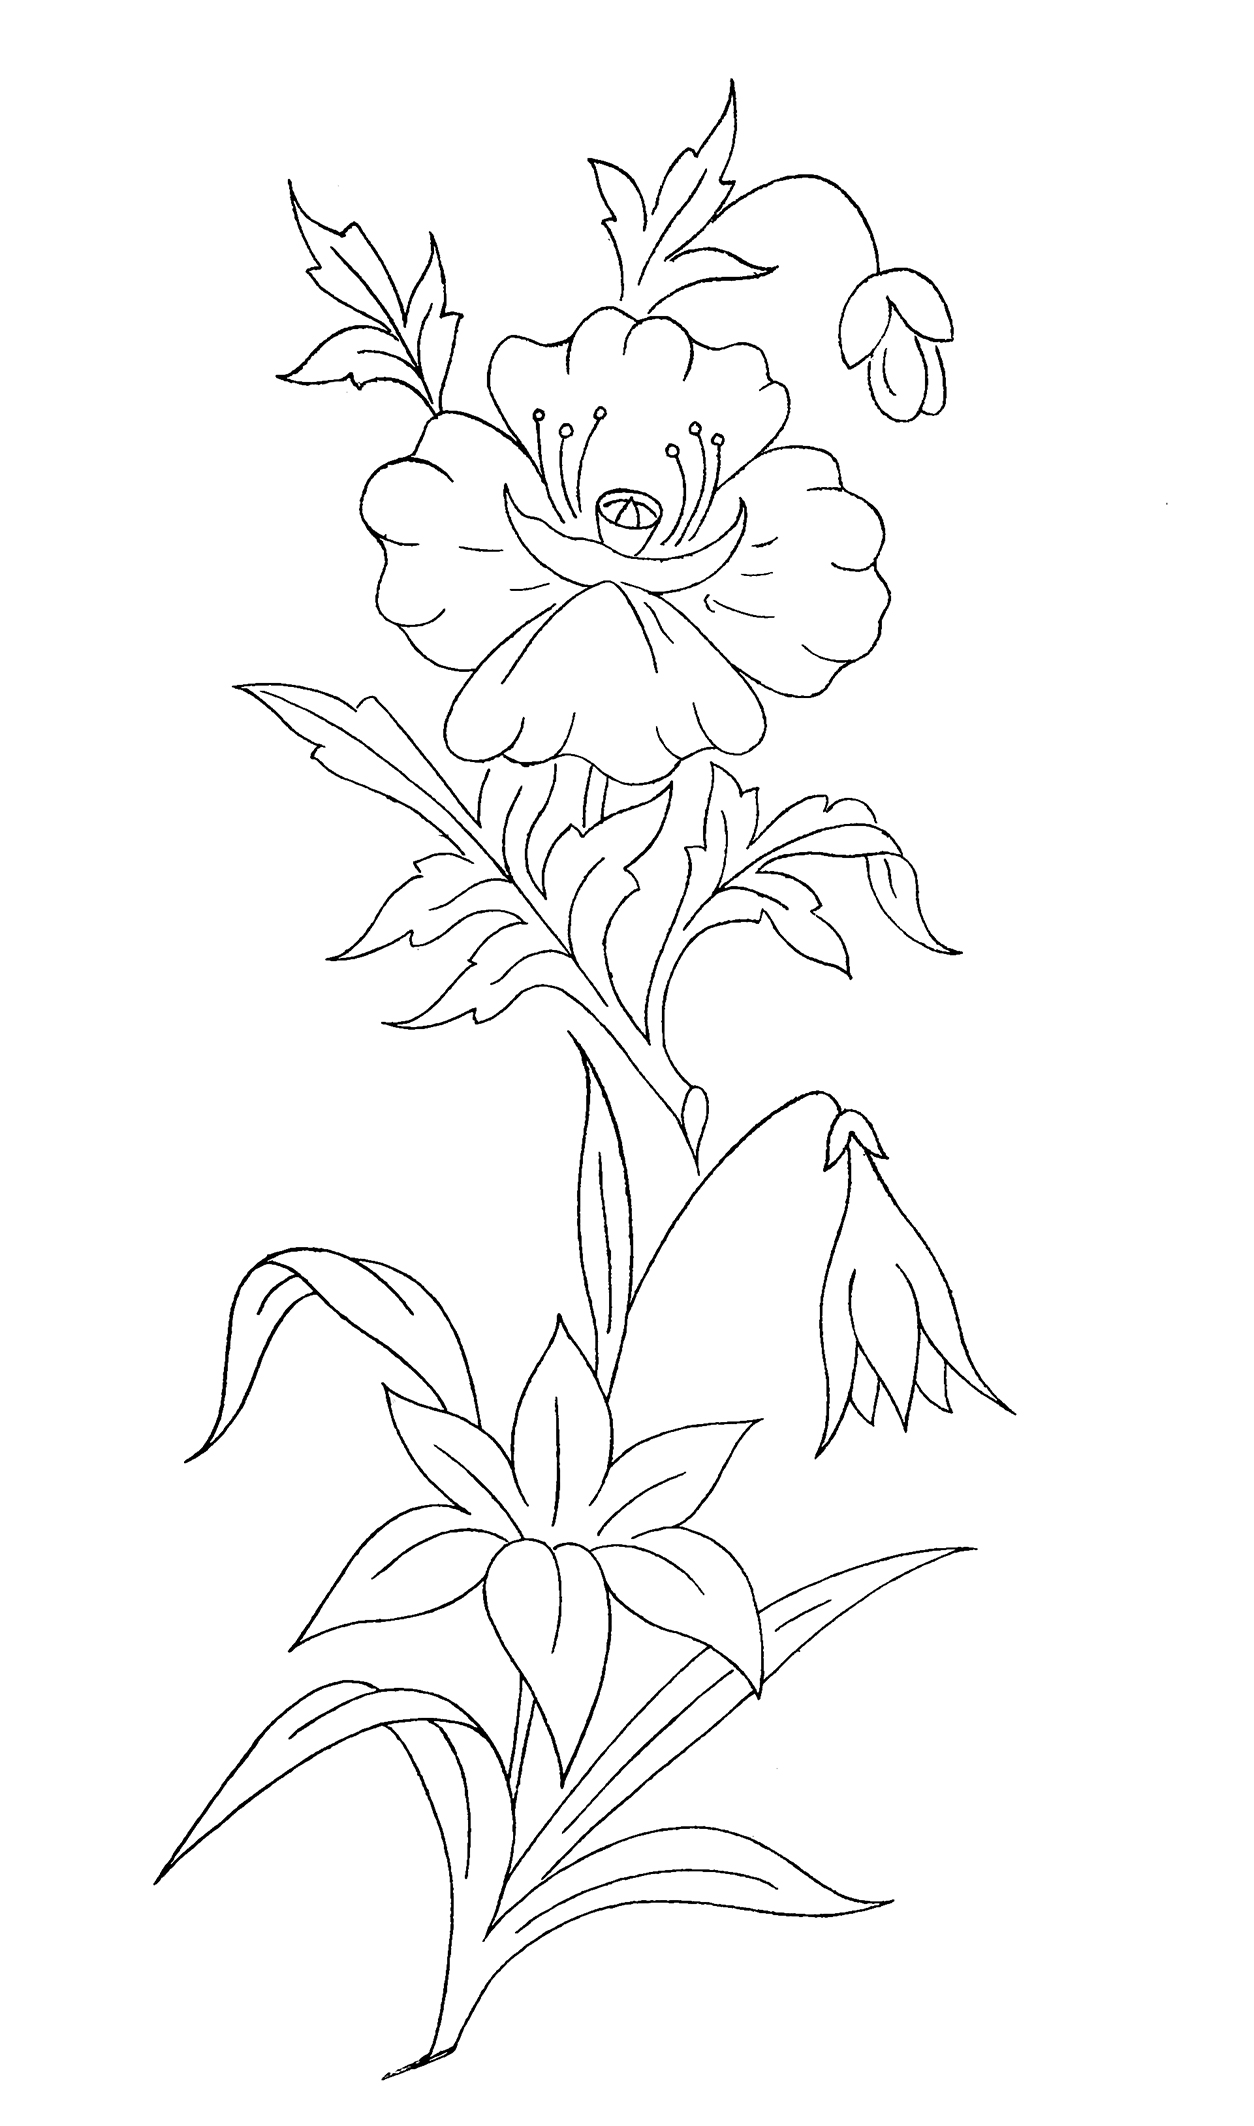 coloring sheet with different flowers